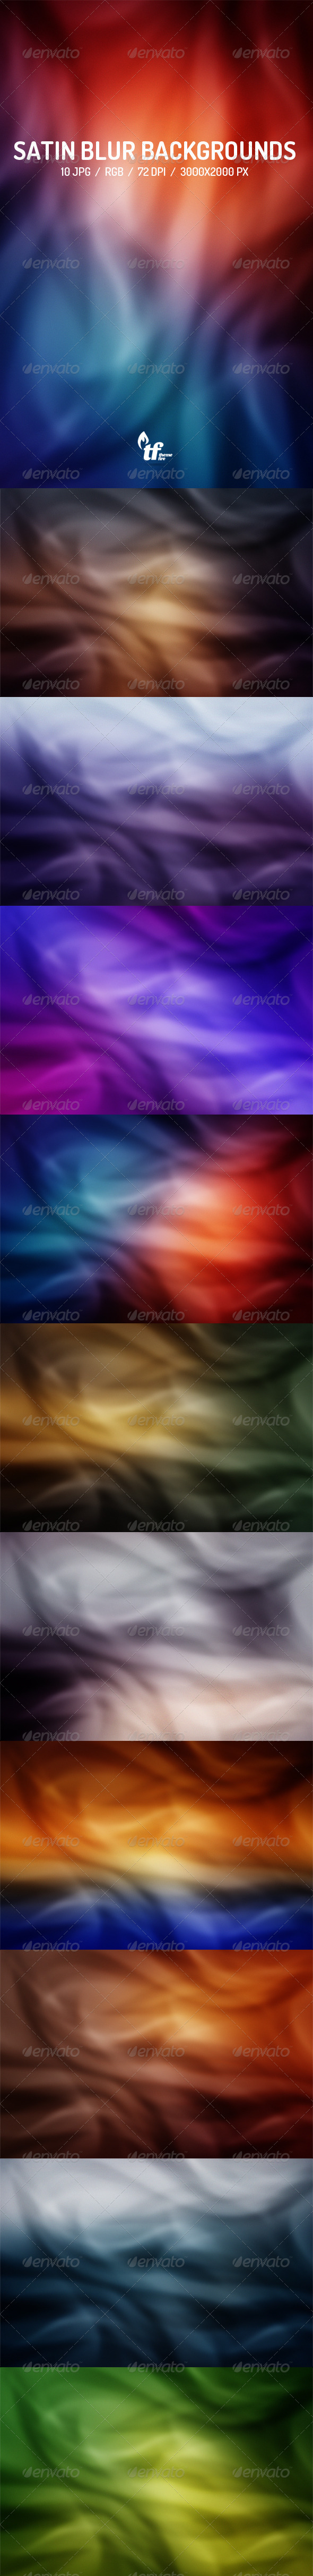 GraphicRiver Satin Blur Backgrounds 8323103